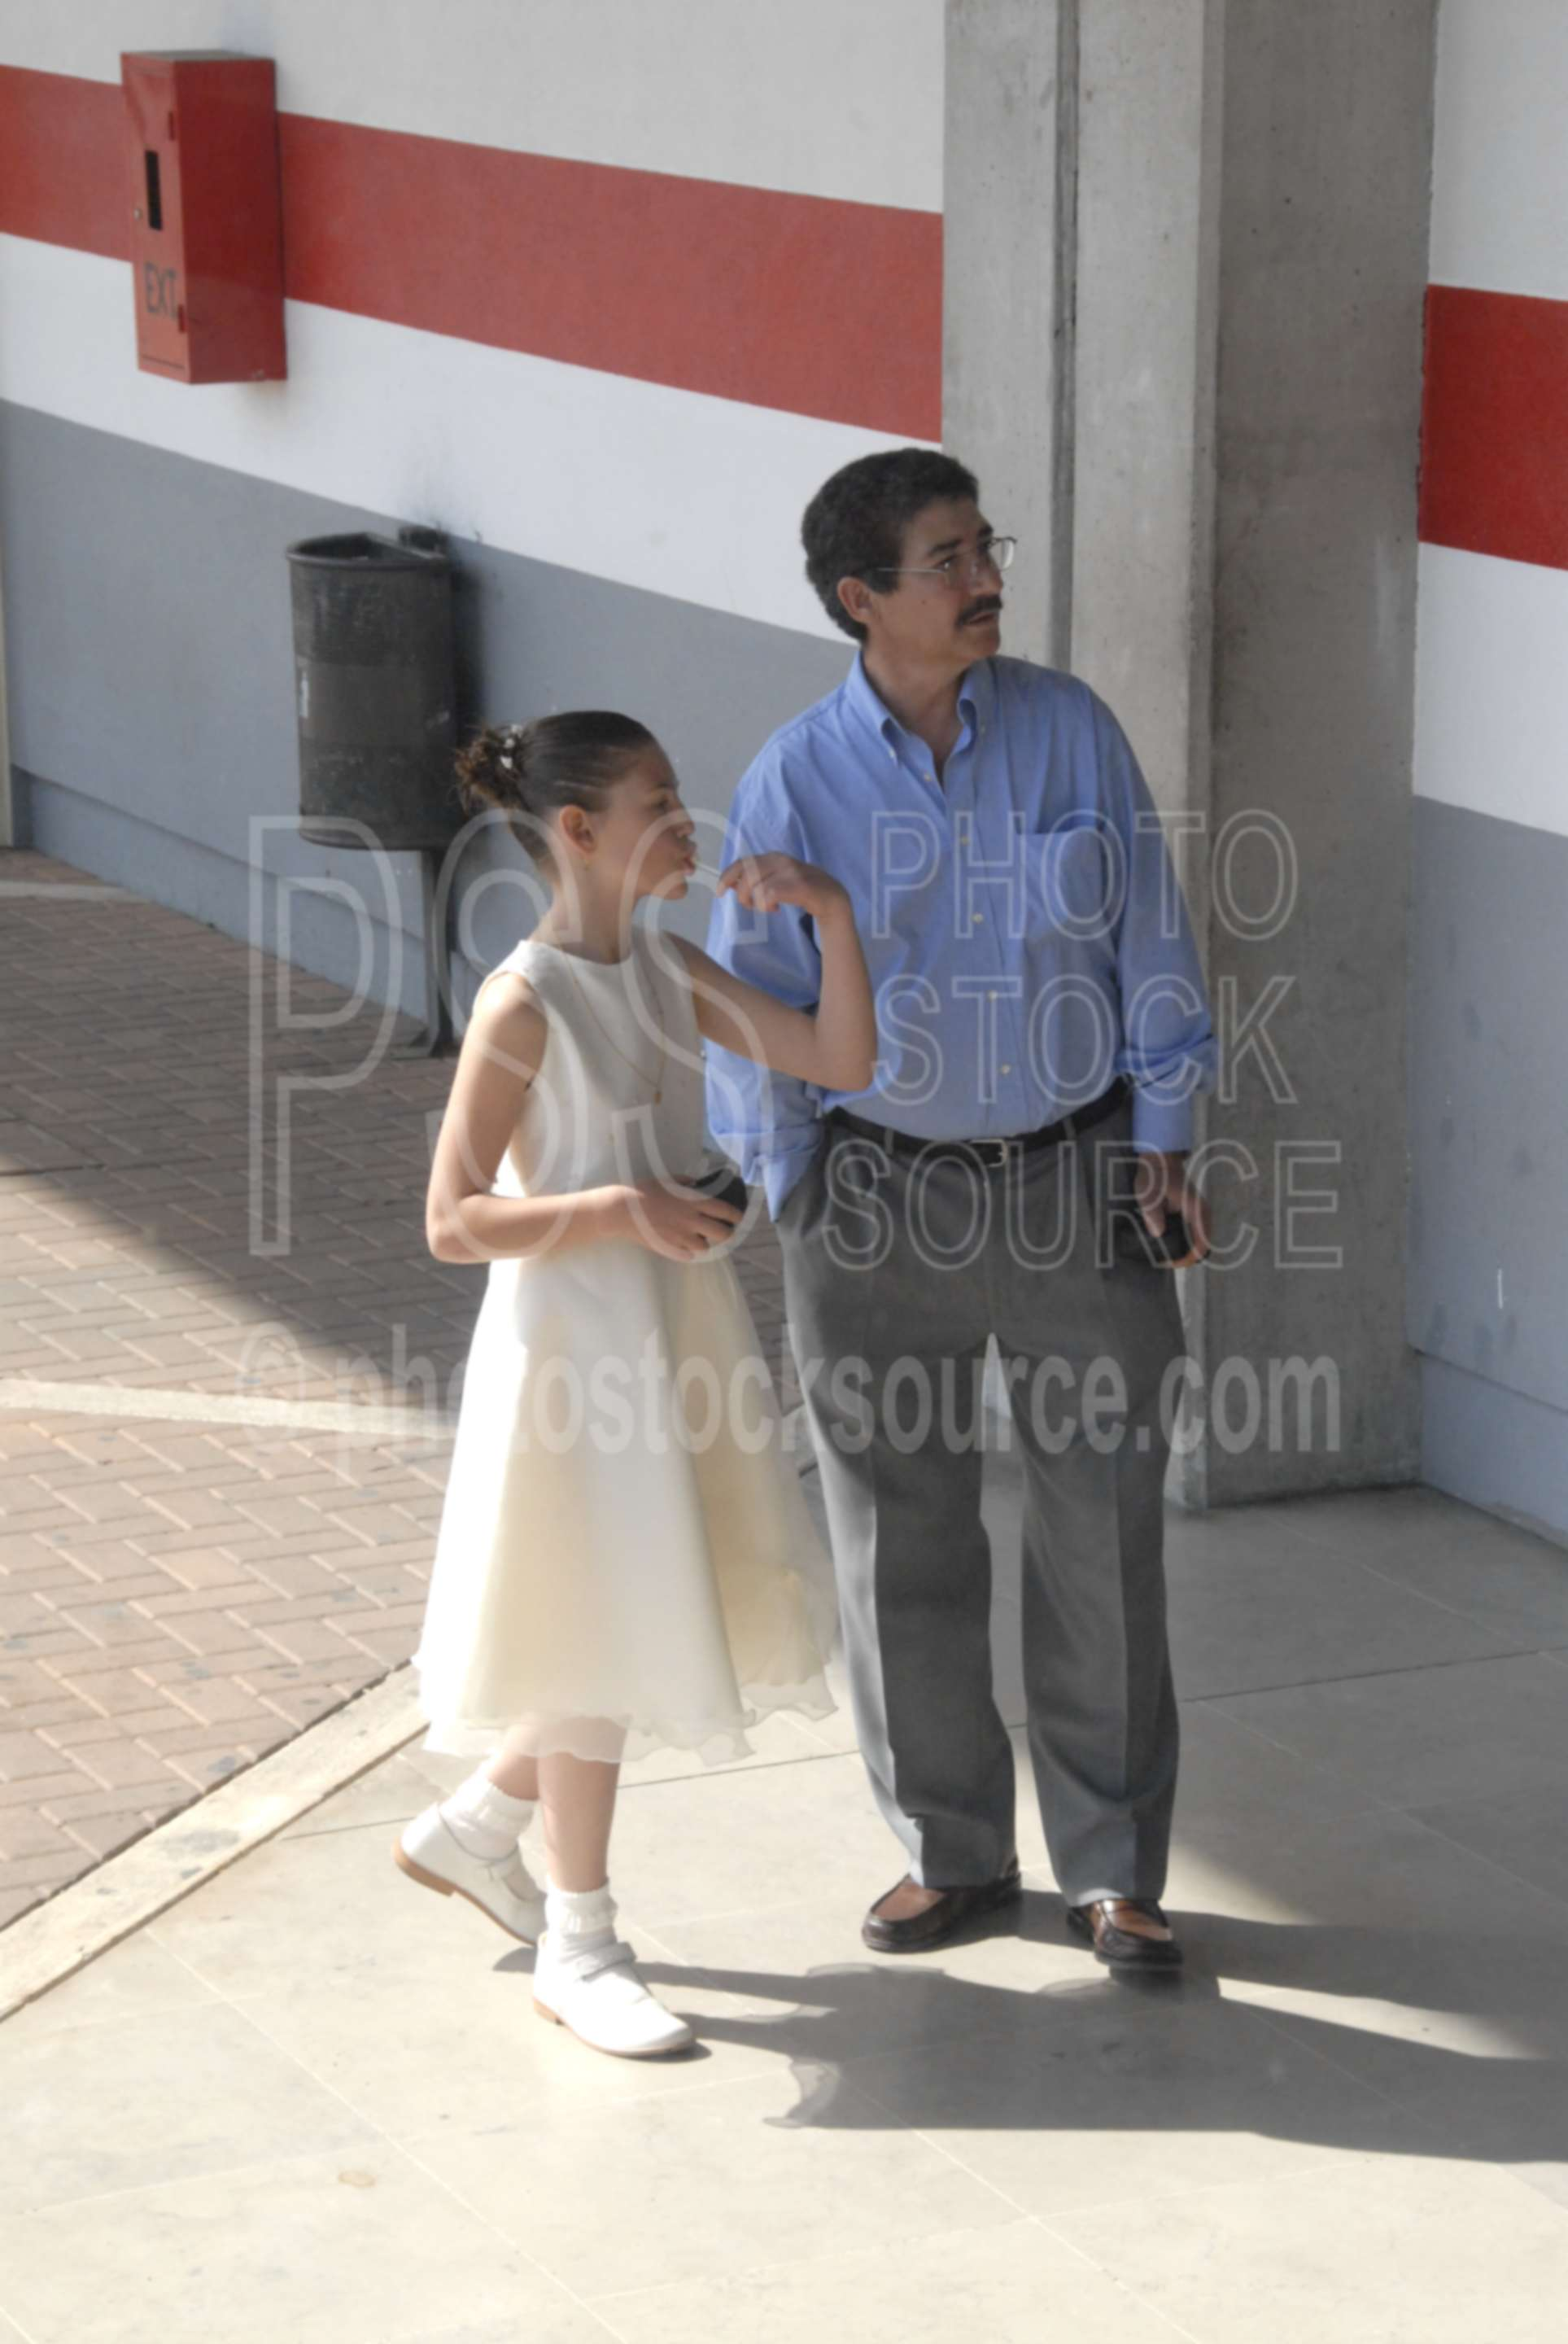 Waiting for a Bus,father,daughter,bus station,girl,young girl,lollipop,pretty dress